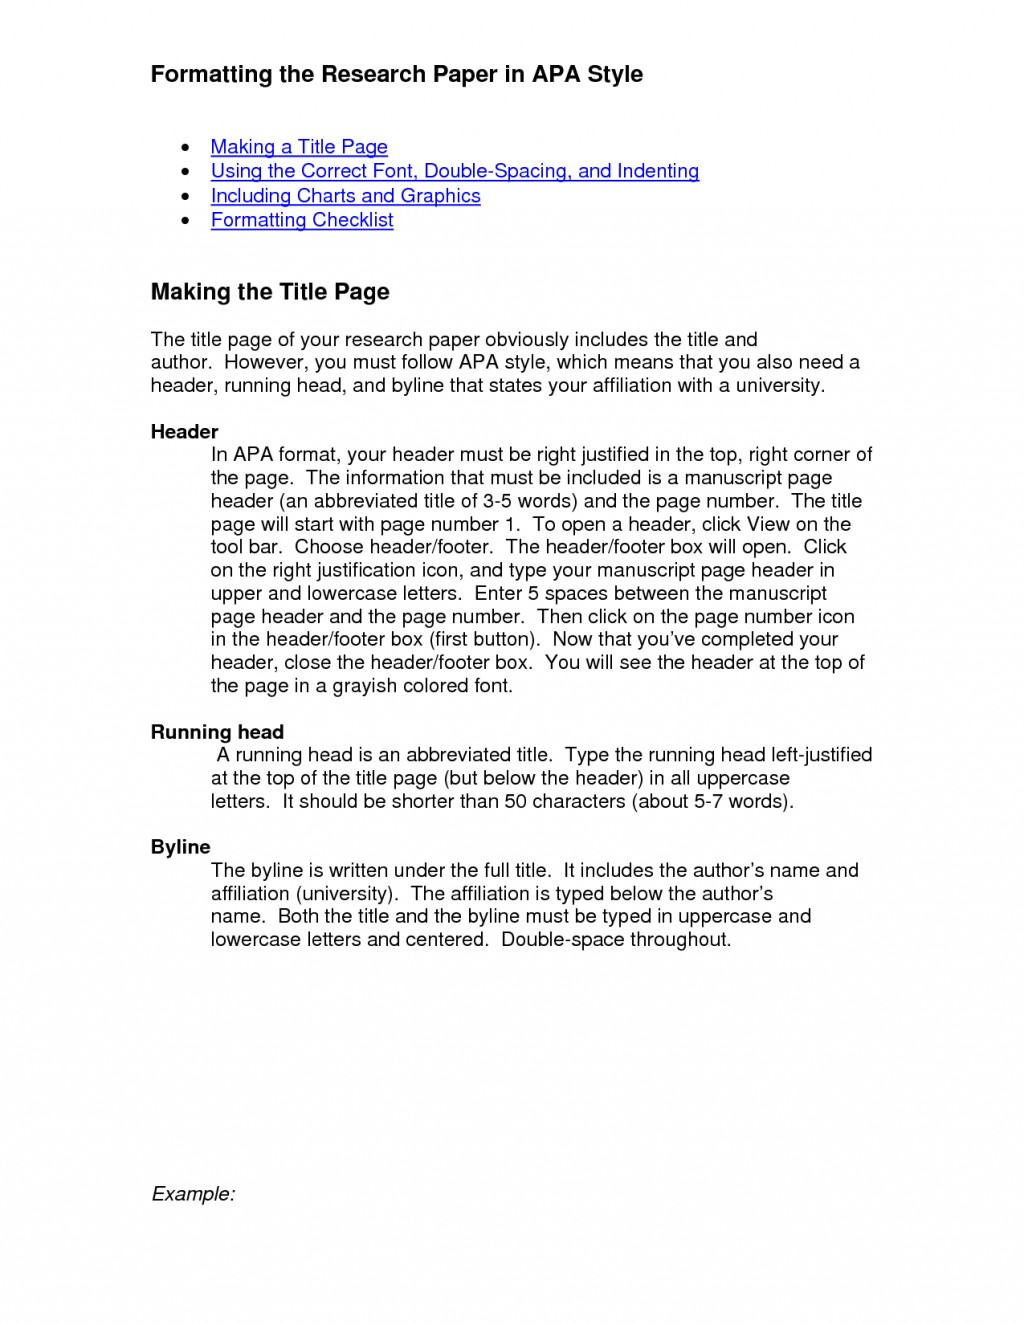 006 Format For Research Paper Apa Style Fotolipcom Rich Image And Wallpaper Template L Imposing Layout Of A Sample Argumentative Formatting Youtube Large